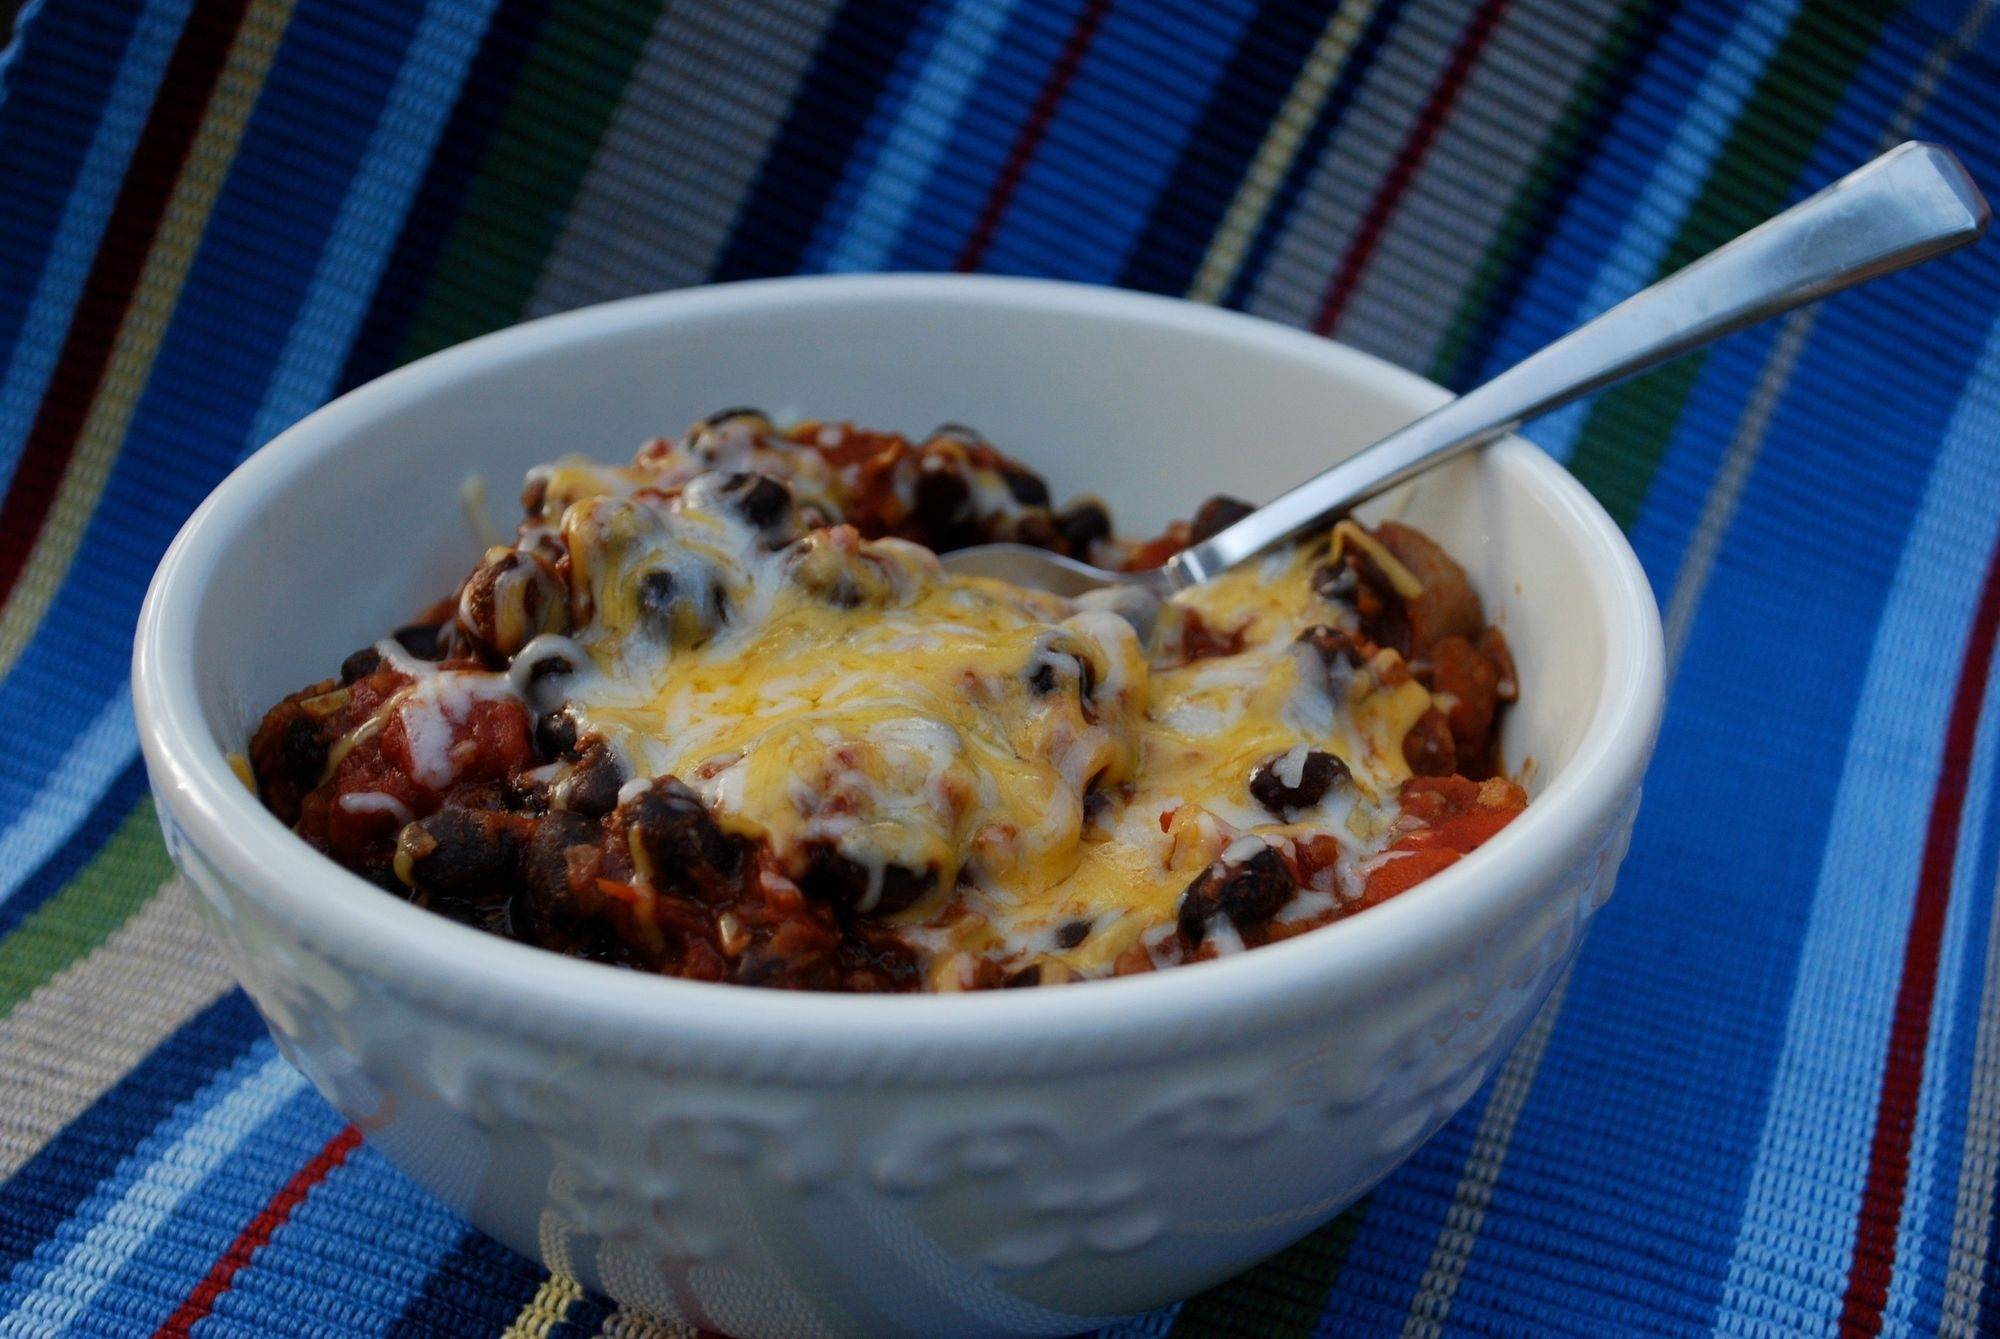 You won't miss the meat in this hearty bowl of chili made with soy crumbles.